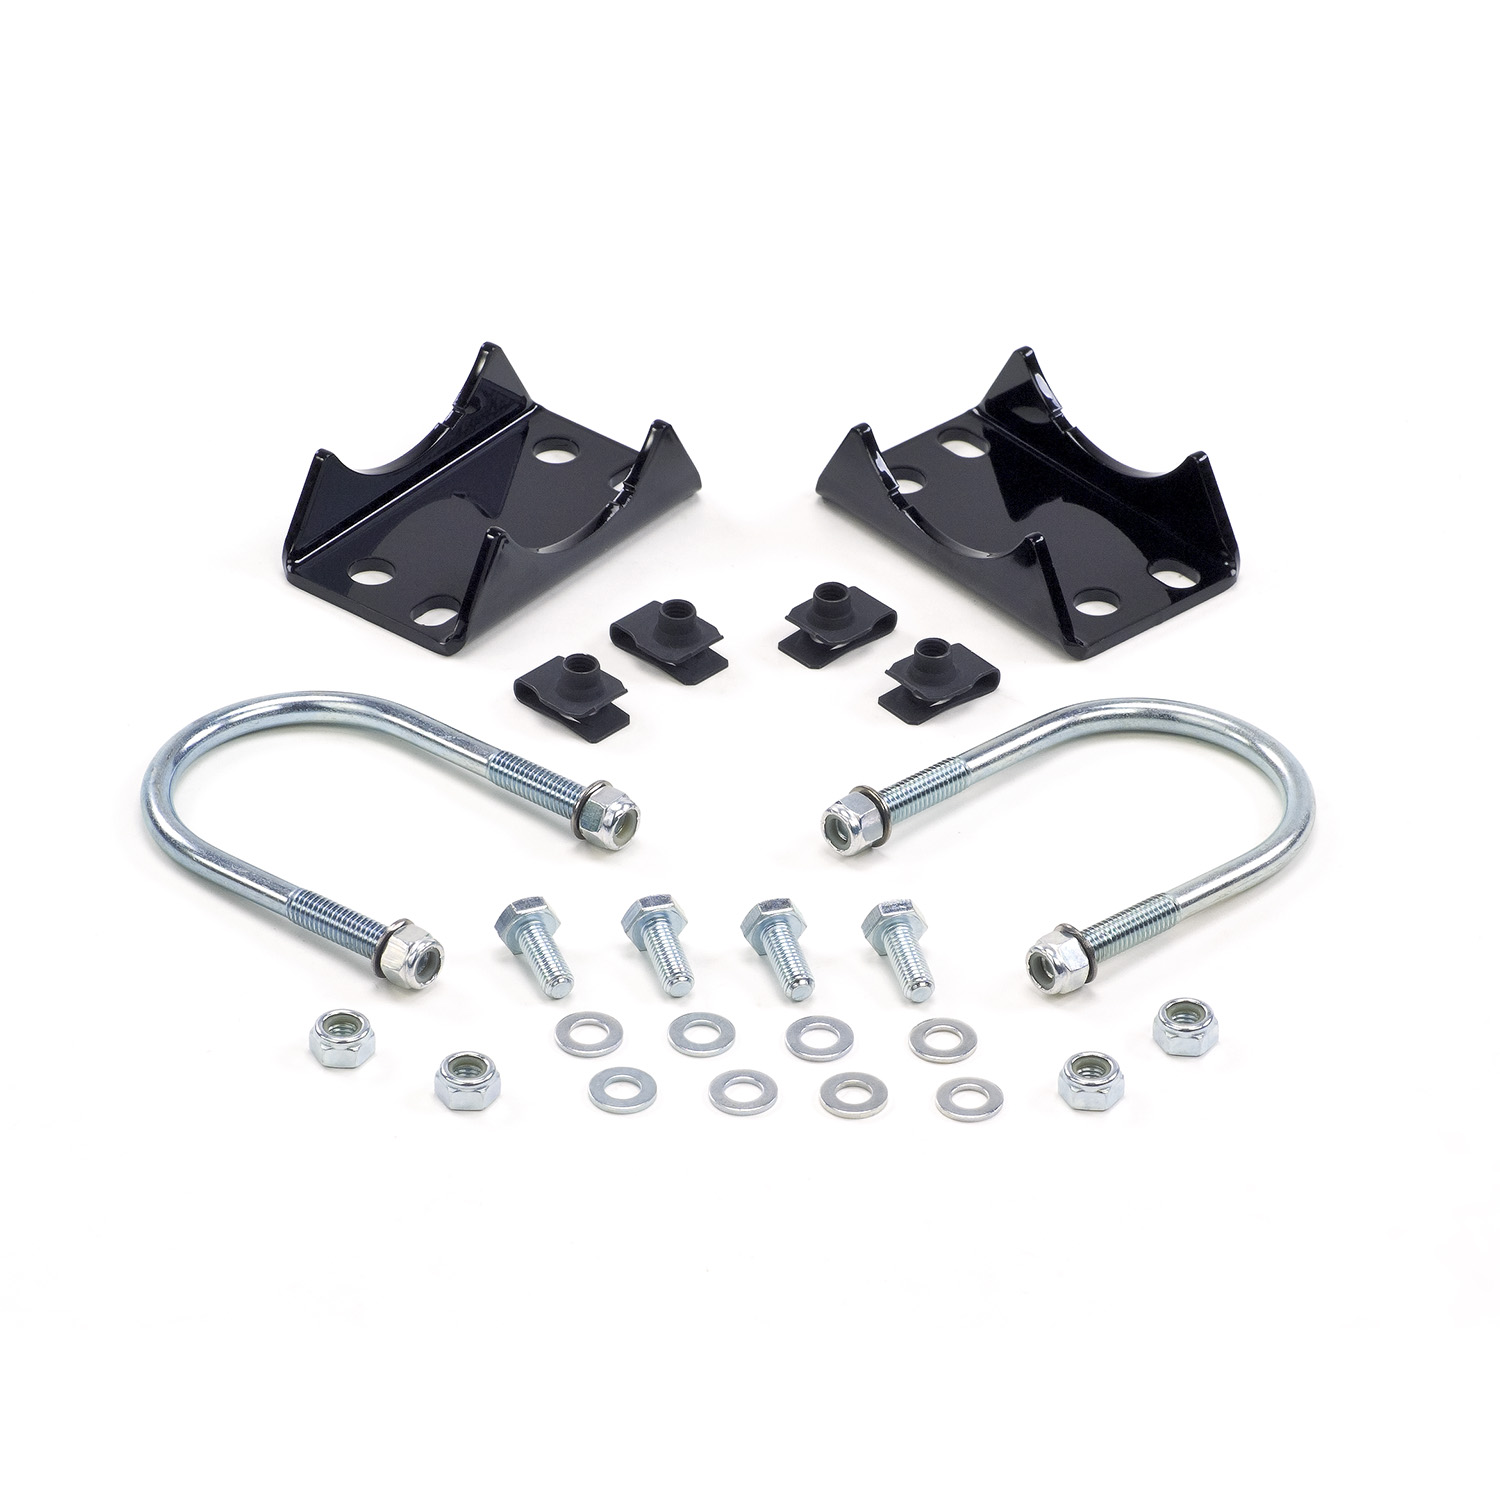 Sway Bar Axle Mount Kit for 9″ Rear Differential Housing by Hotchkis Suspension